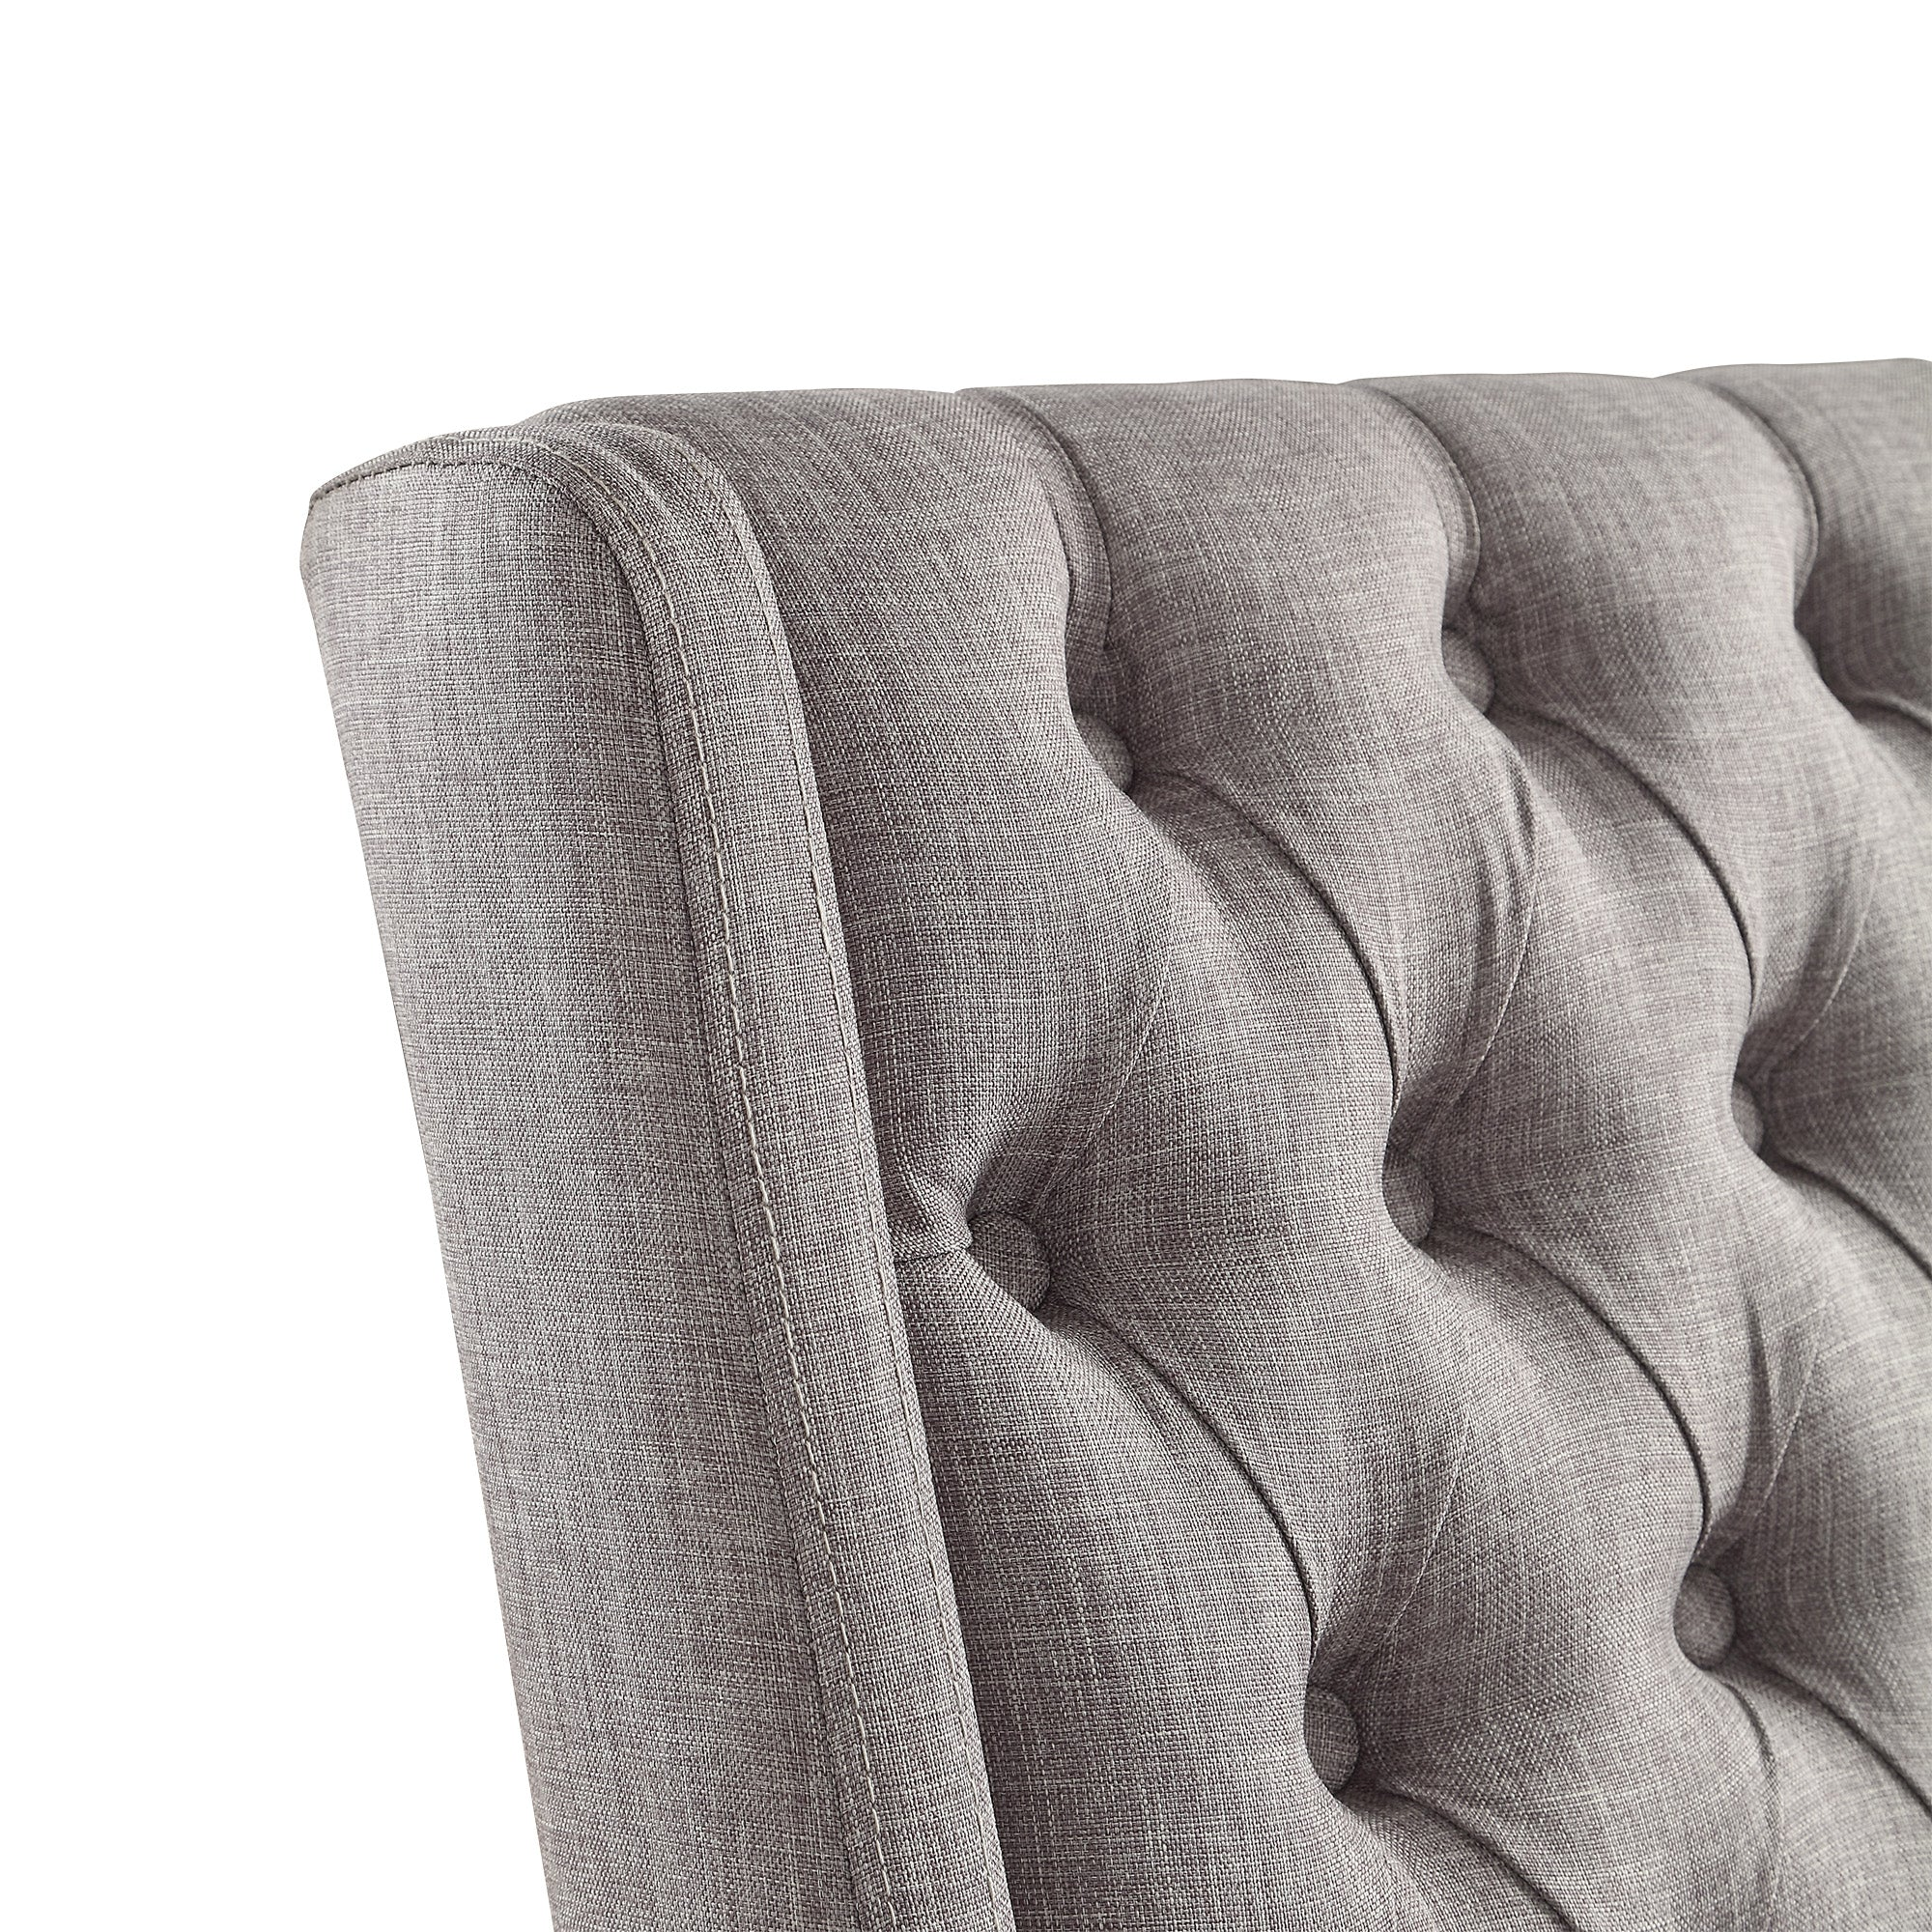 Tufted Wingback Hostess Chair (Set of 2) - Grey Color Finish